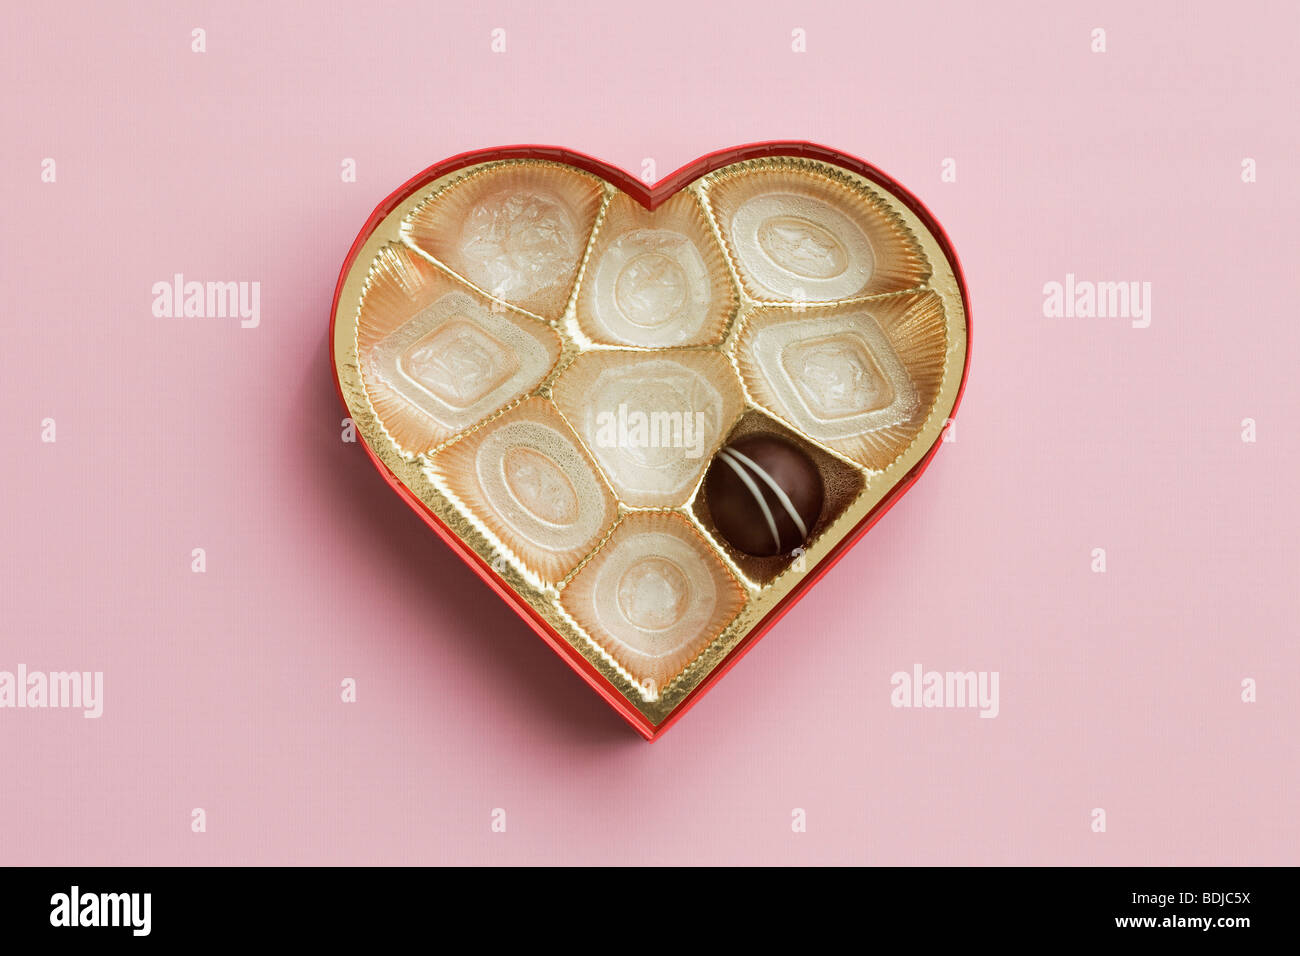 Still Life of Heart-Shaped Box of Chocolates Stock Photo